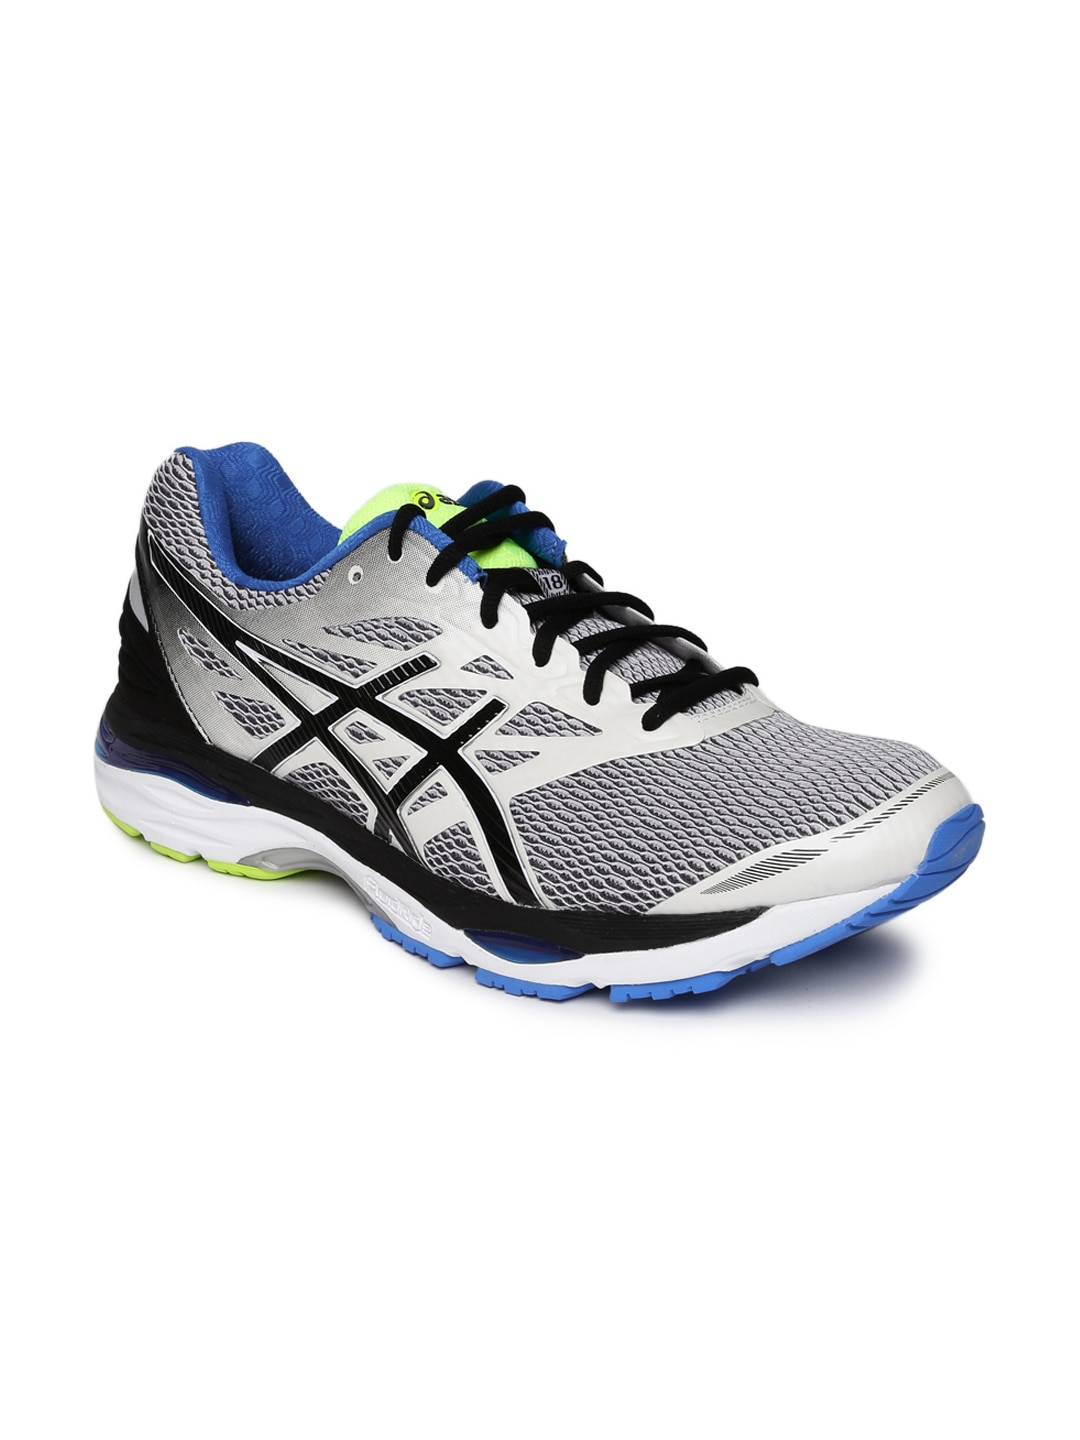 dfe9b8614ac Sports Shoes for Men - Buy Men Sports Shoes Online in India - Myntra